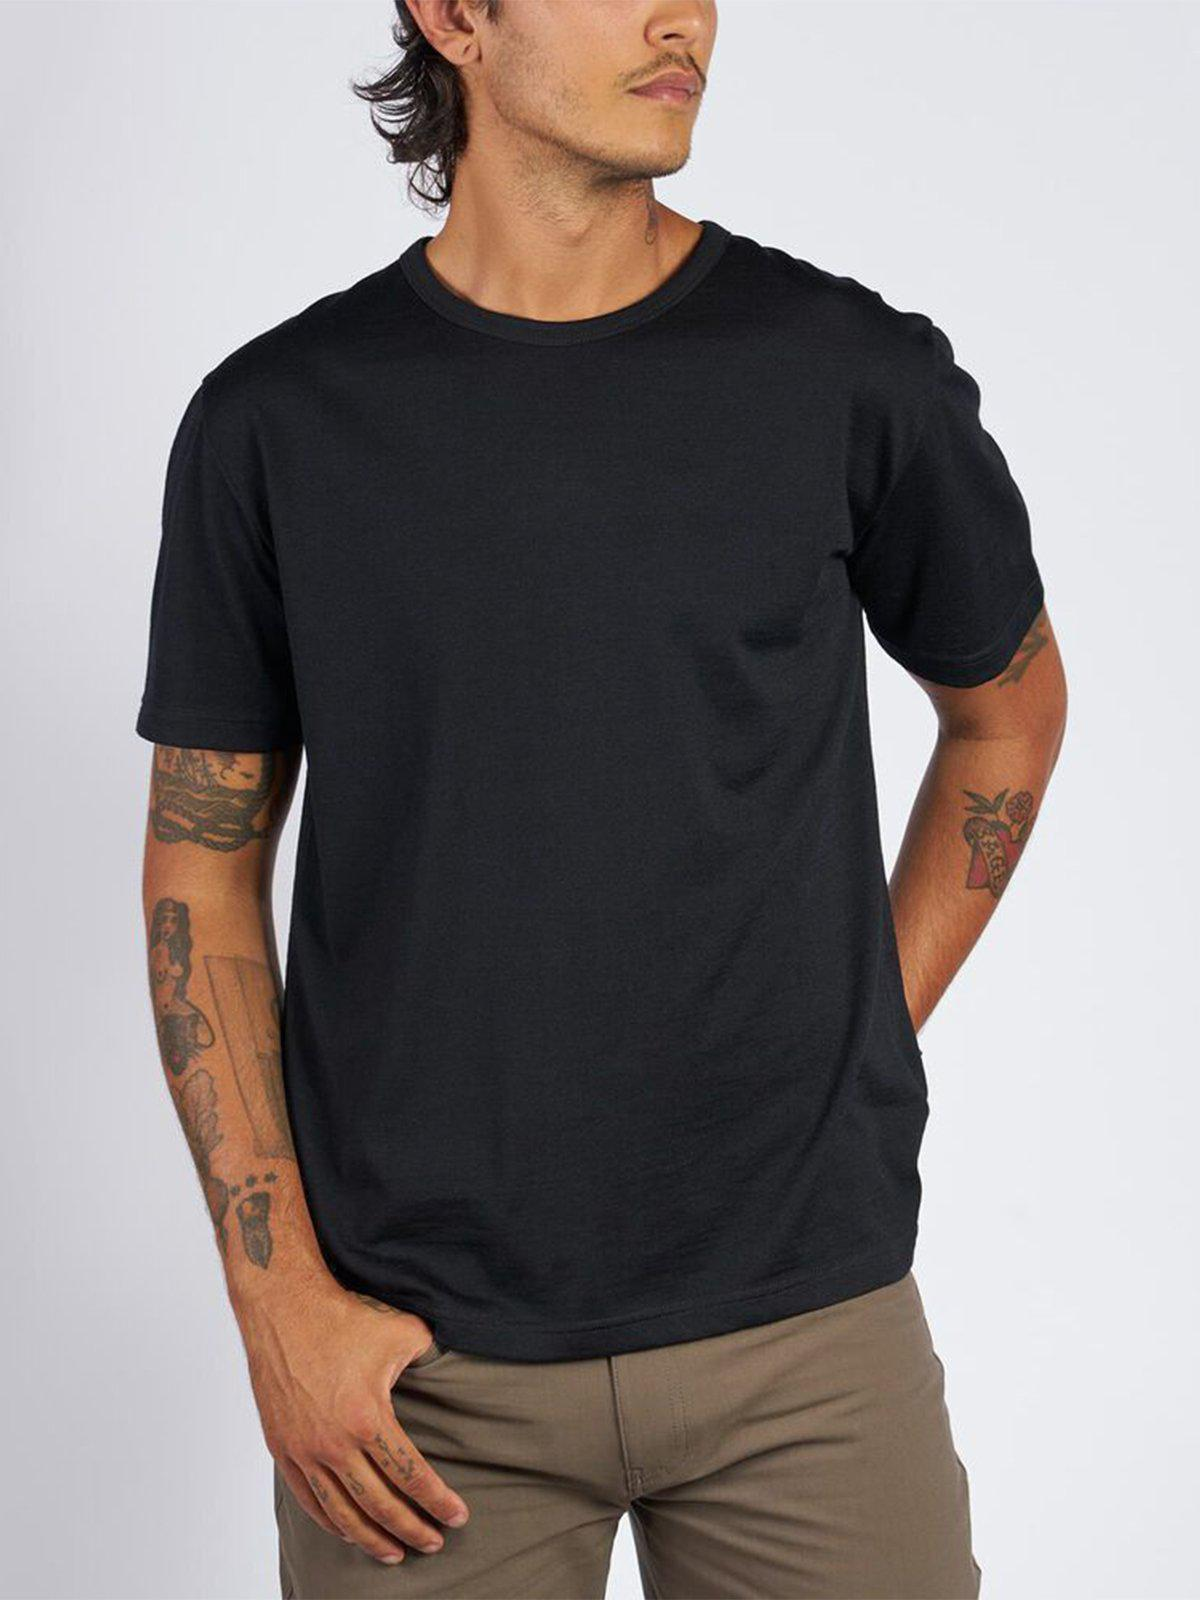 Chrome Industries Merino Short Sleeve Tee Black